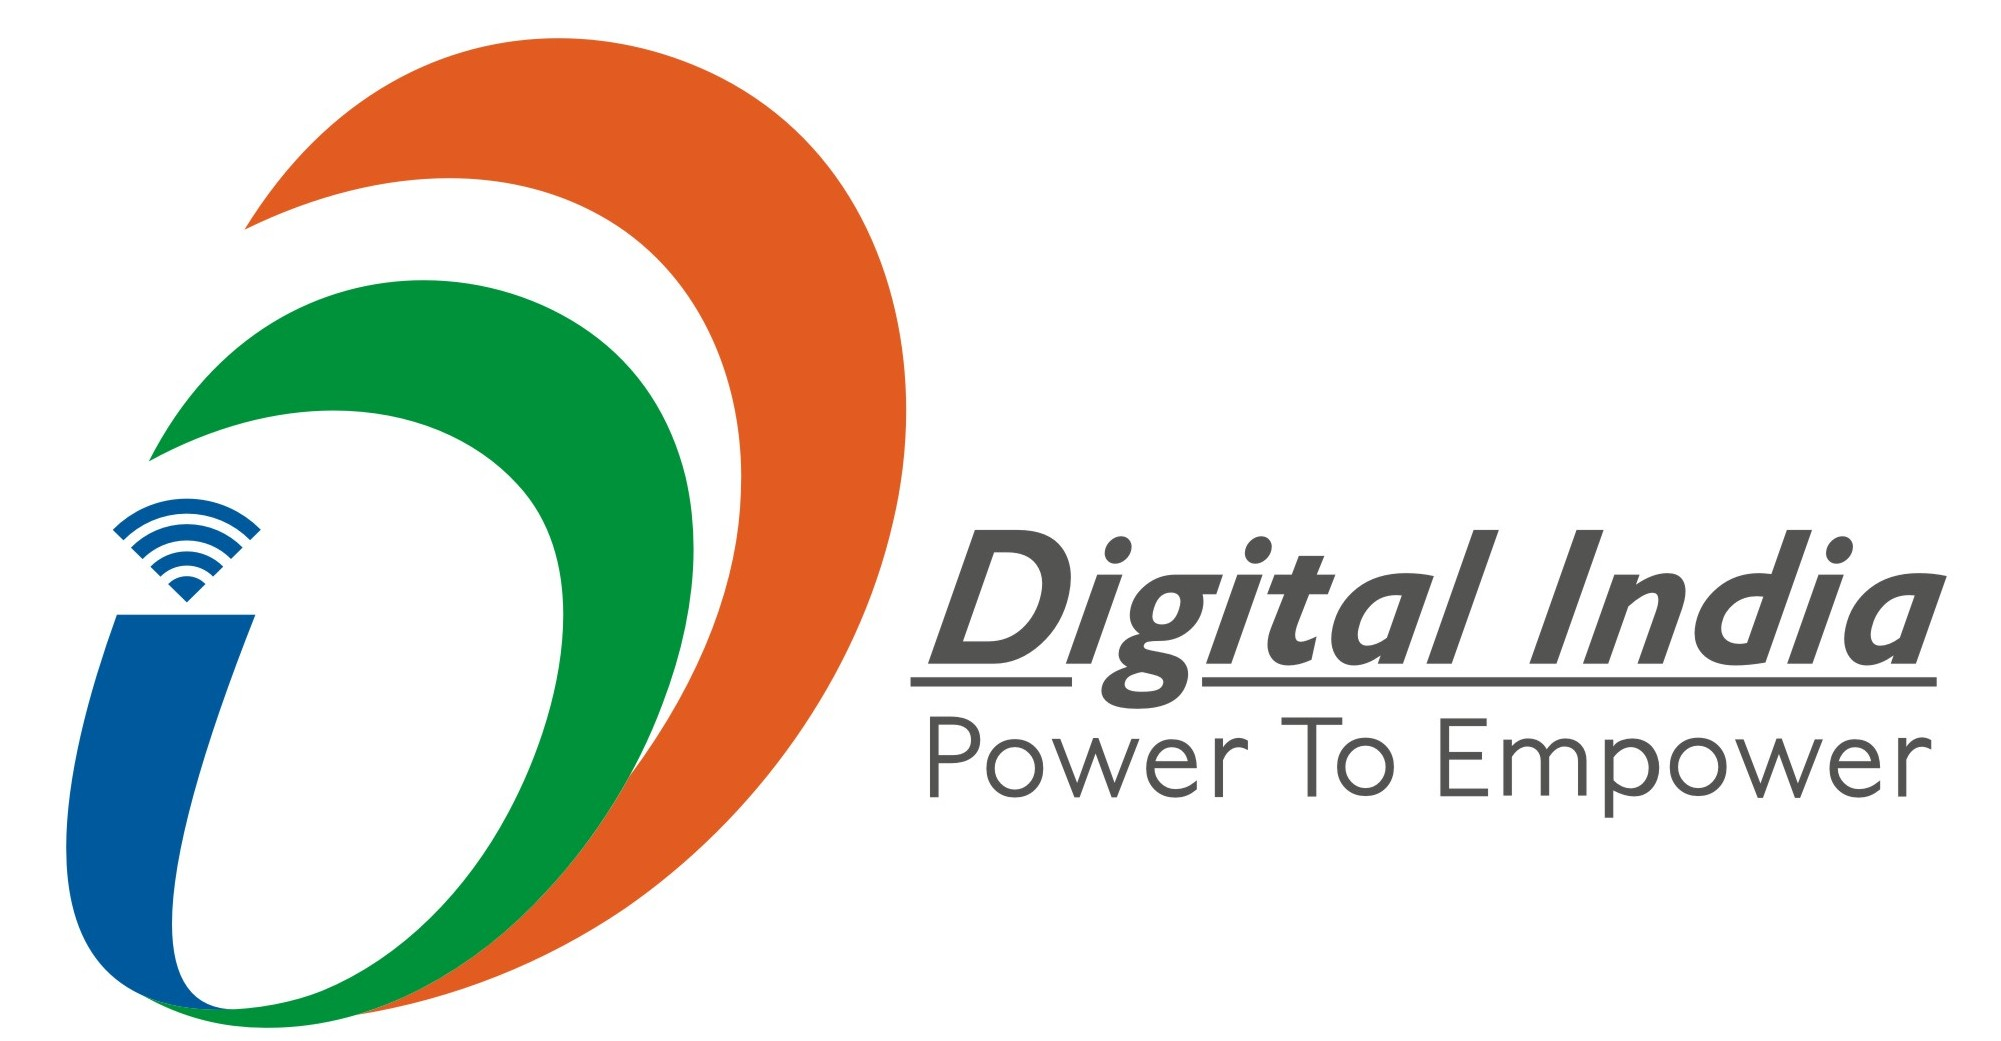 Updates on the recent most Digital India initiatives